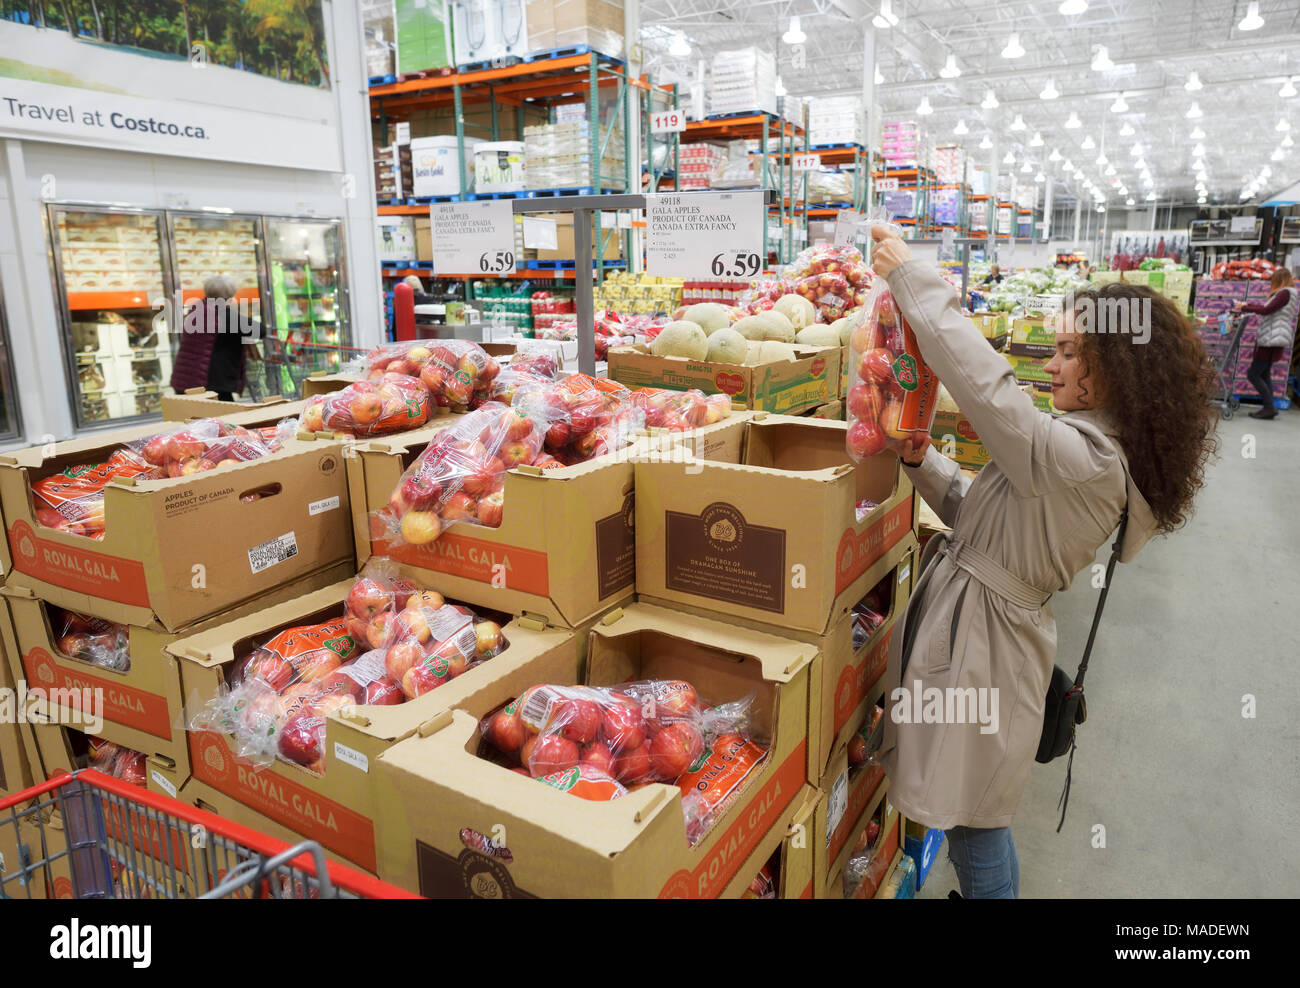 Woman picking a bag of apples at Costco Wholesale membership warehouse store food section. British Columbia, Canada 2017. Stock Photo